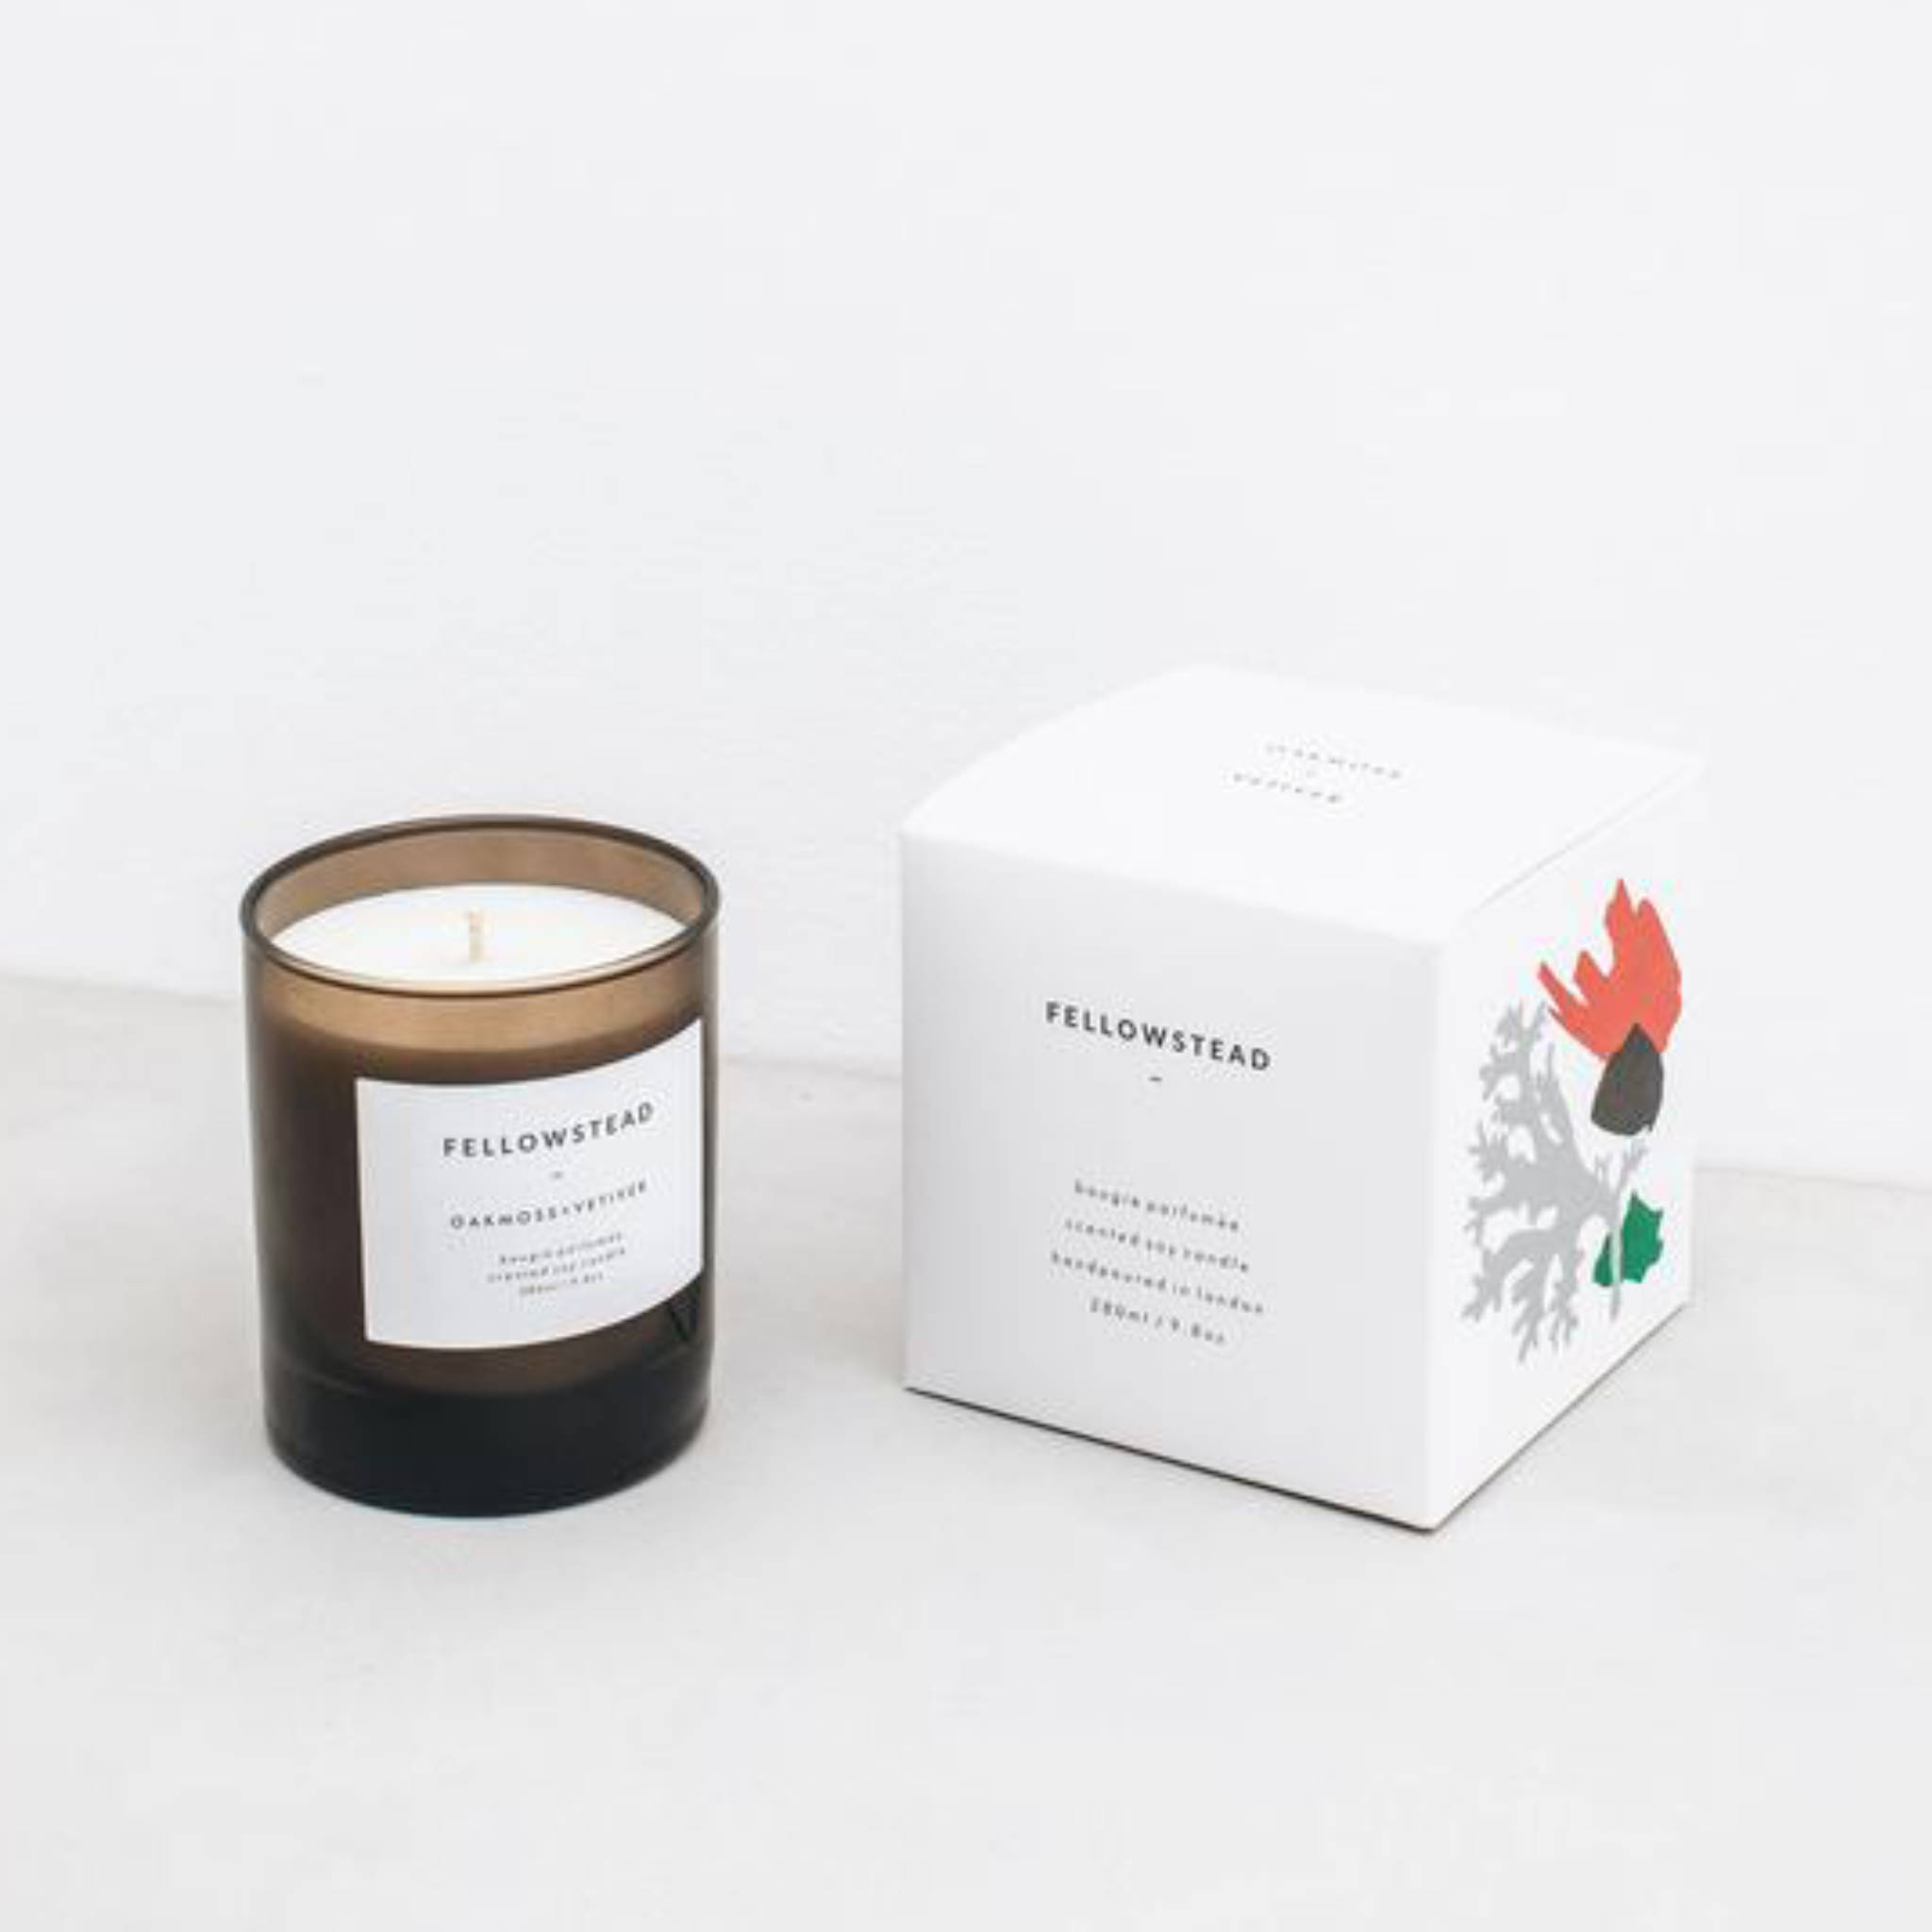 Fellowstead Soy Candle- Oakmoss & Vetiver